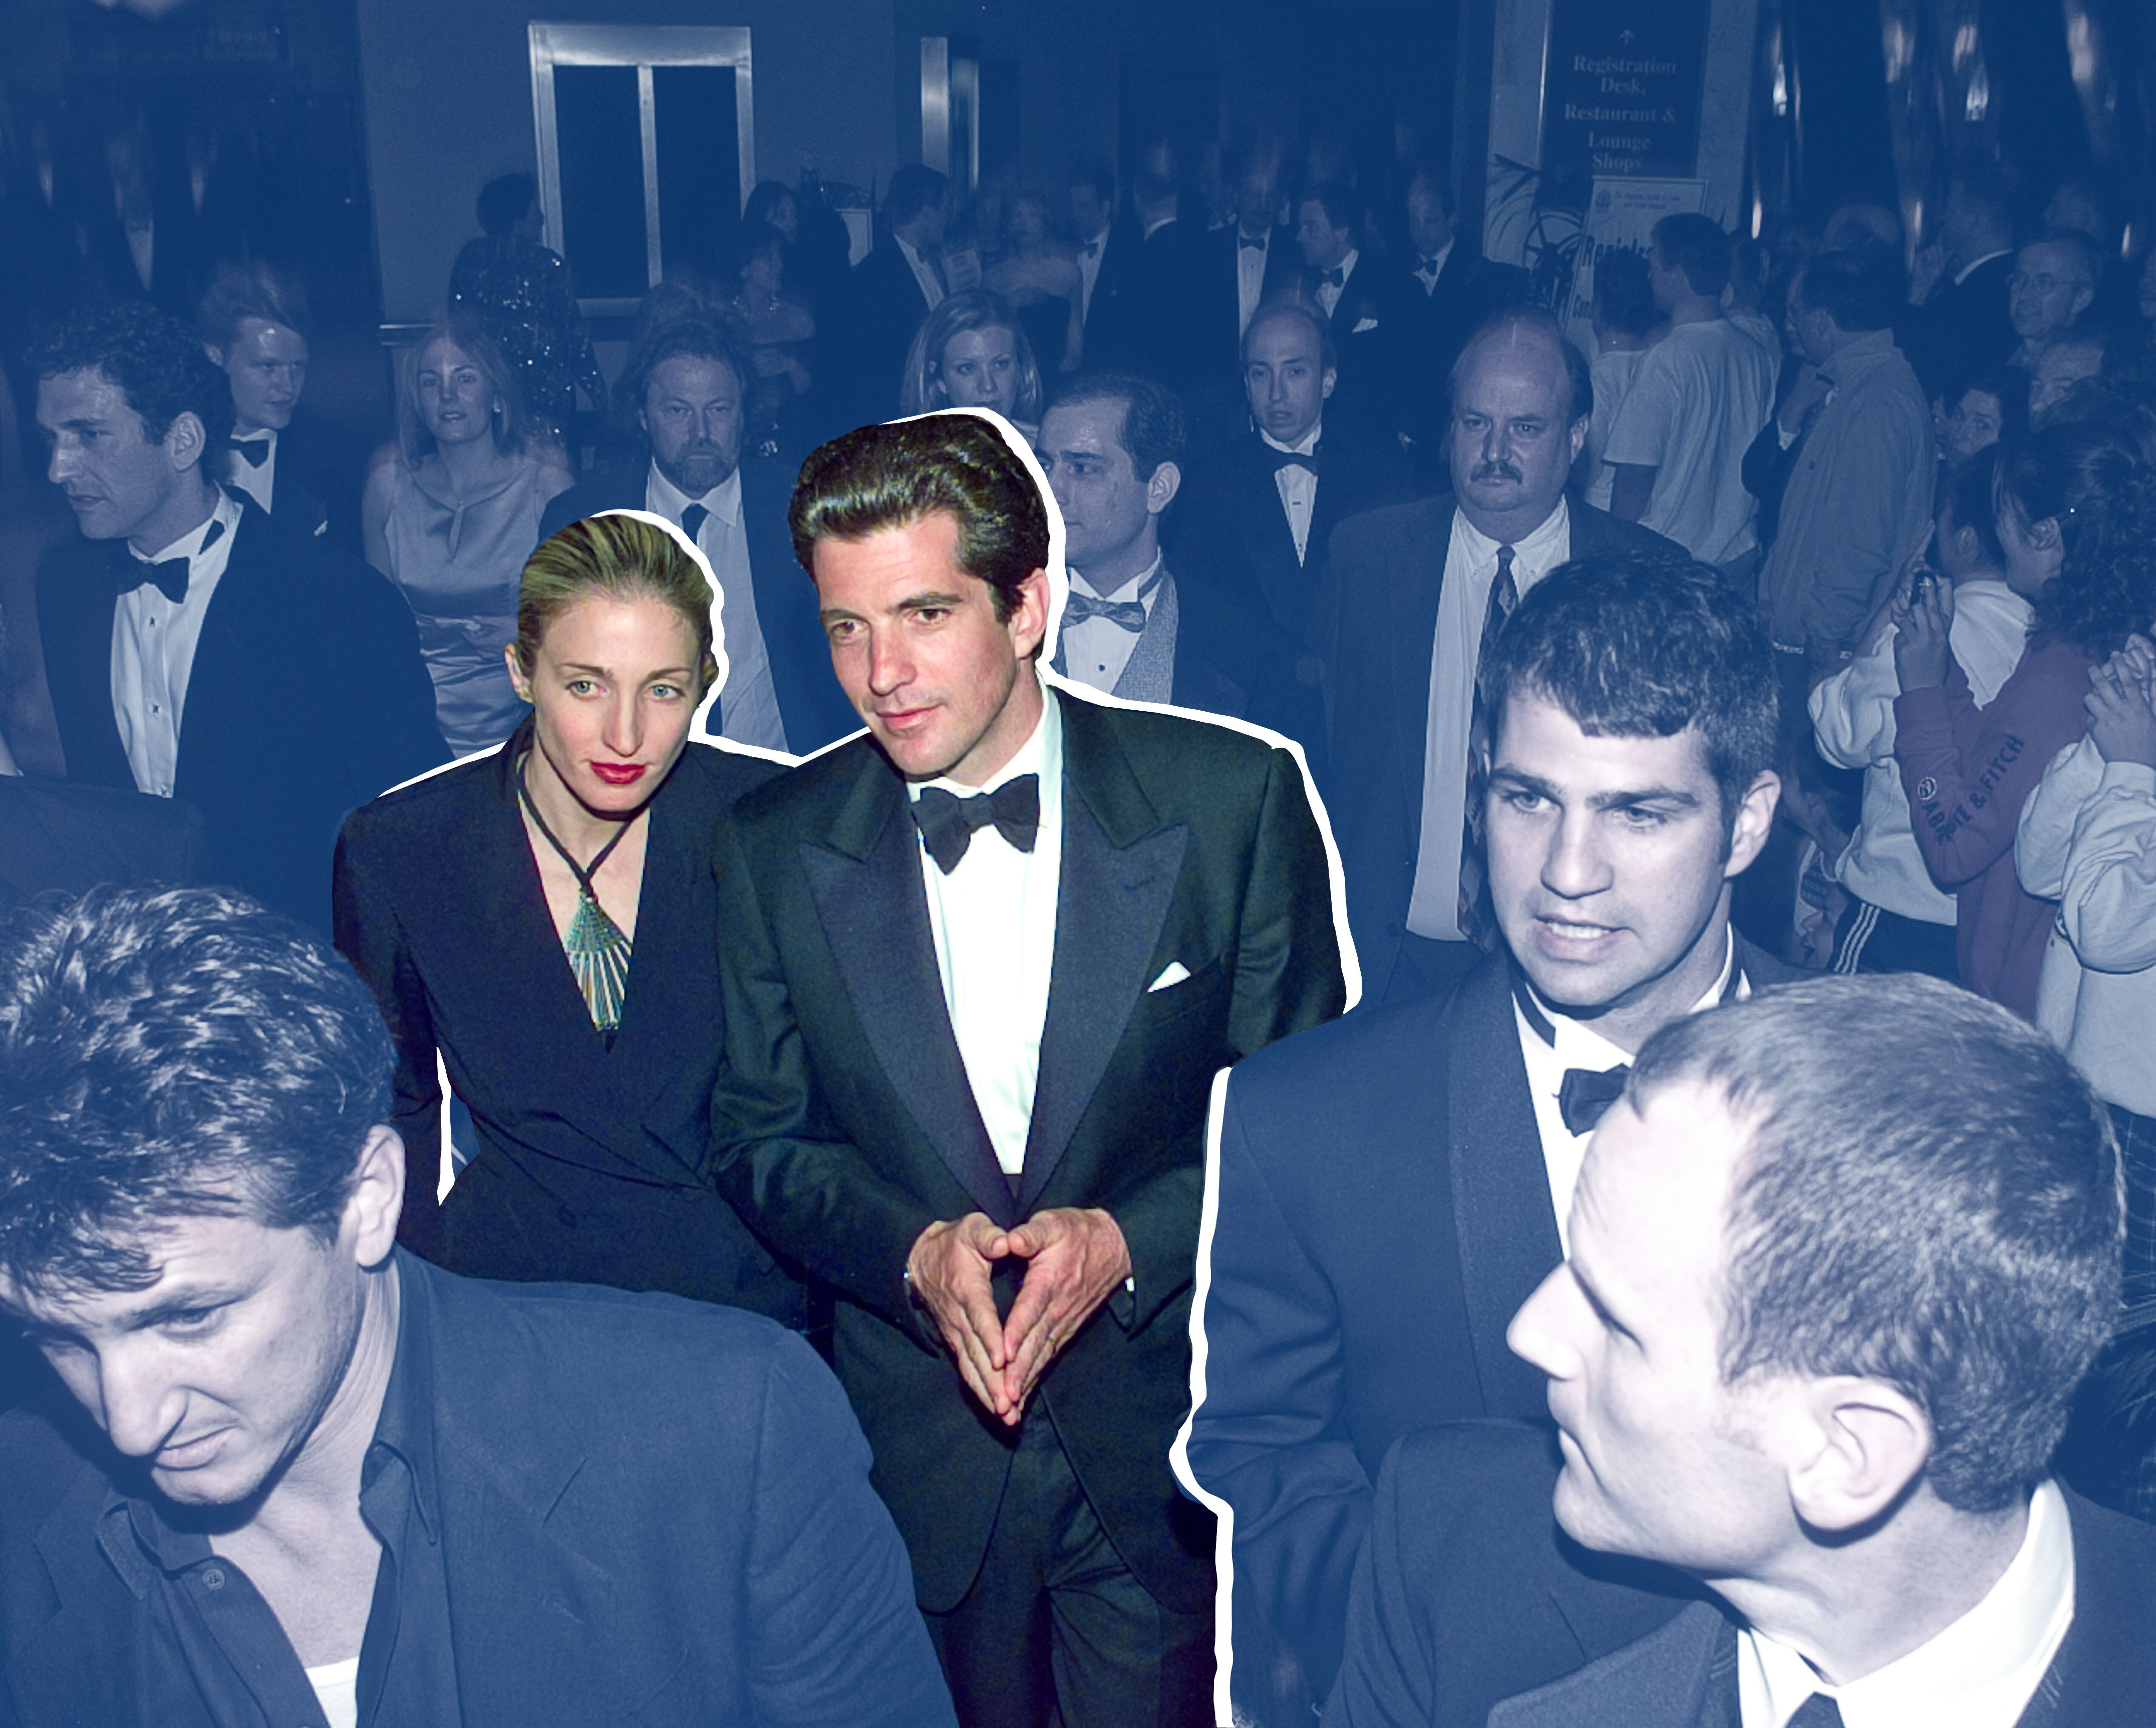 True Story of JFK Jr  and Carolyn Bessette's Last Days Before the